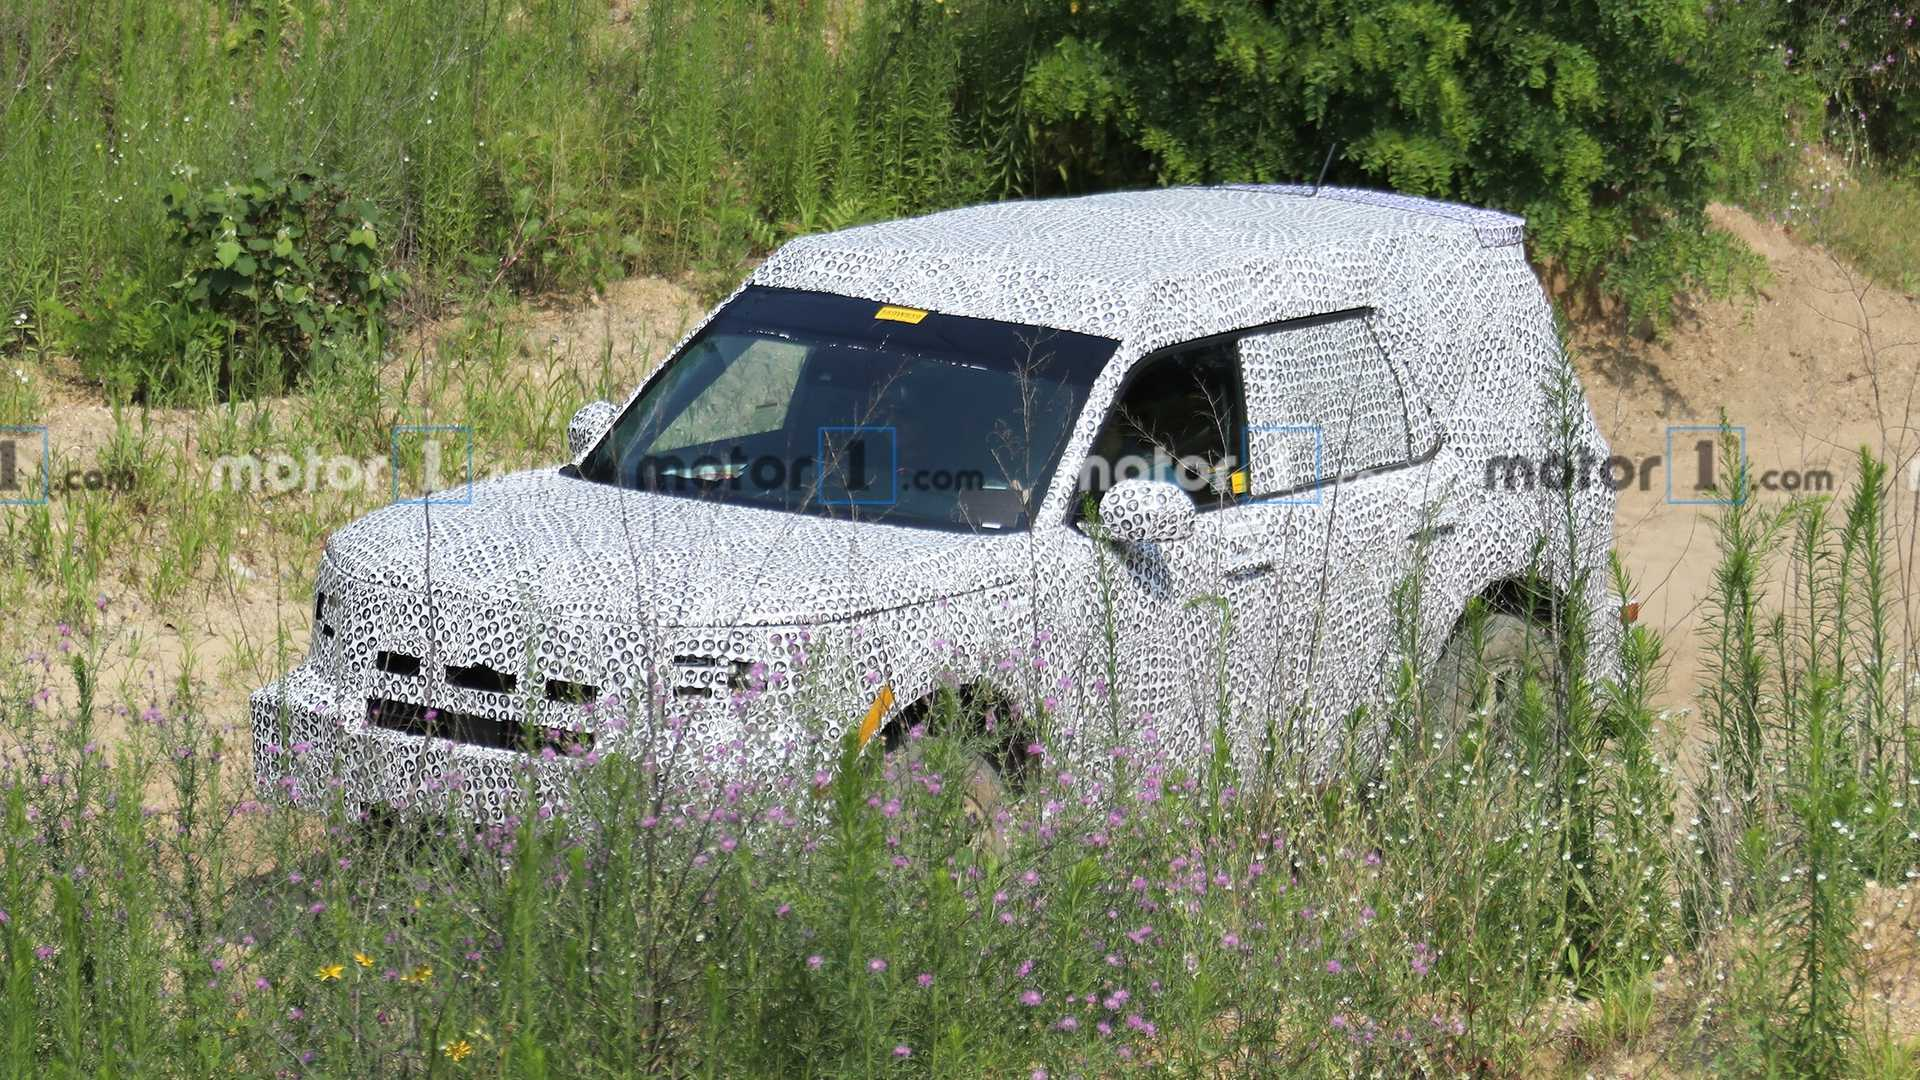 Ford Baby Bronco Spied For First Time, Could Be Called